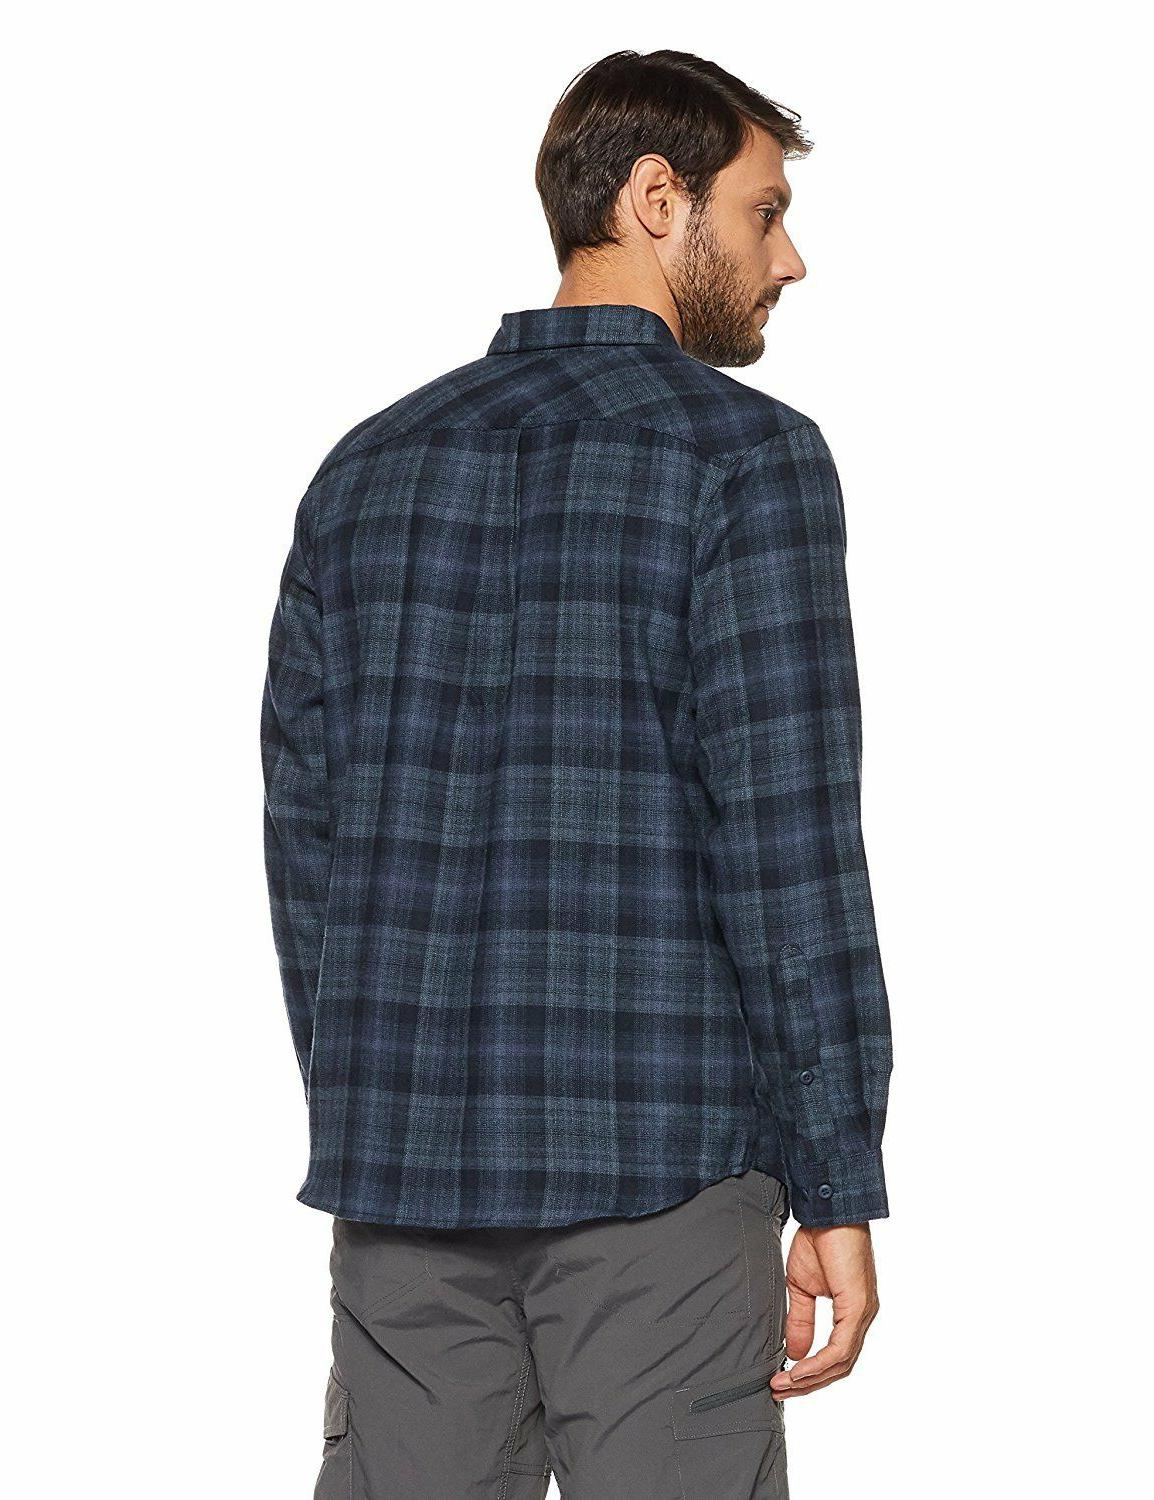 Columbia Flannel Shirt Silver $65 Sleeve Size